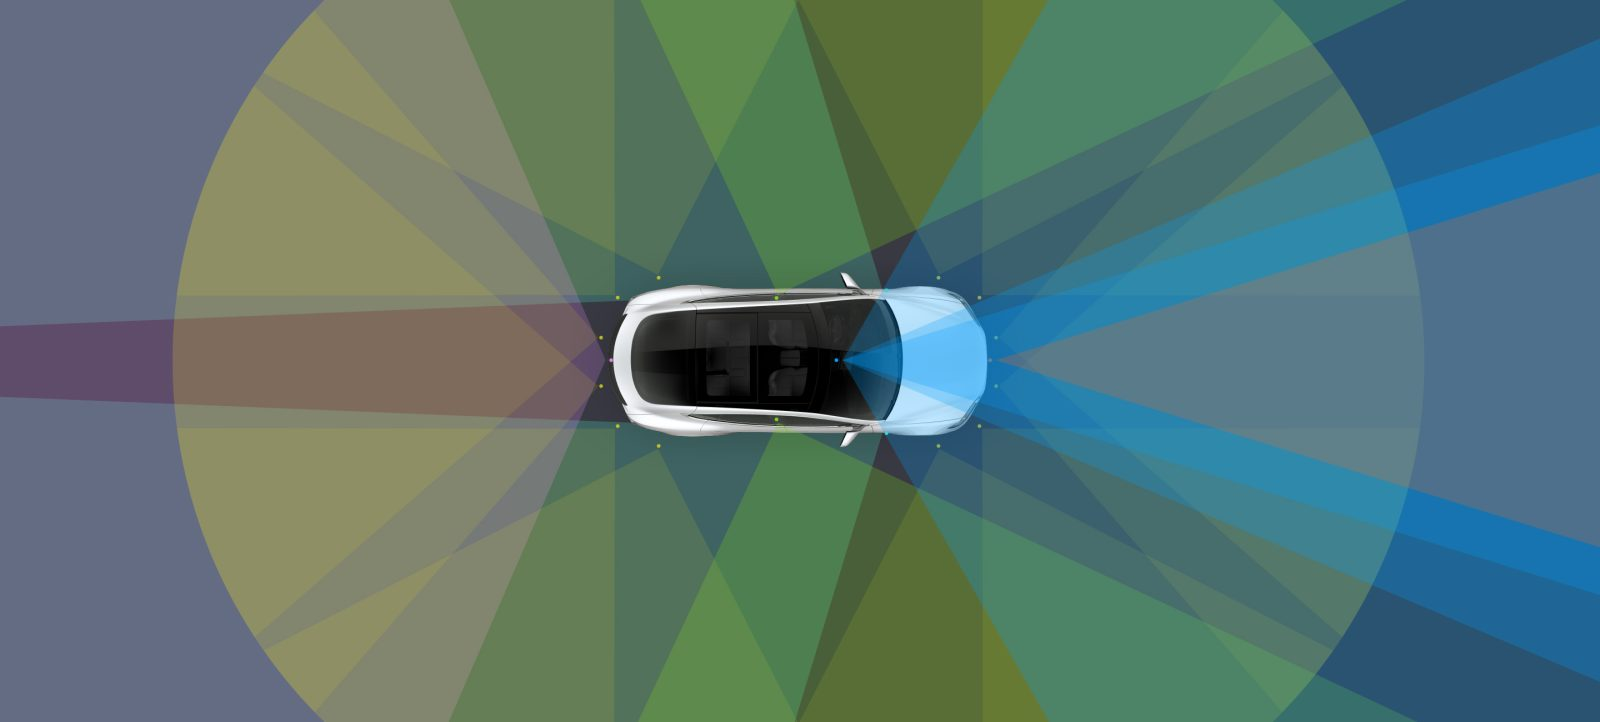 Tesla's Autopilot chip supplier NVIDIA on new self-driving system: 'It's basically 5 yrs ahead and coming in 2017'